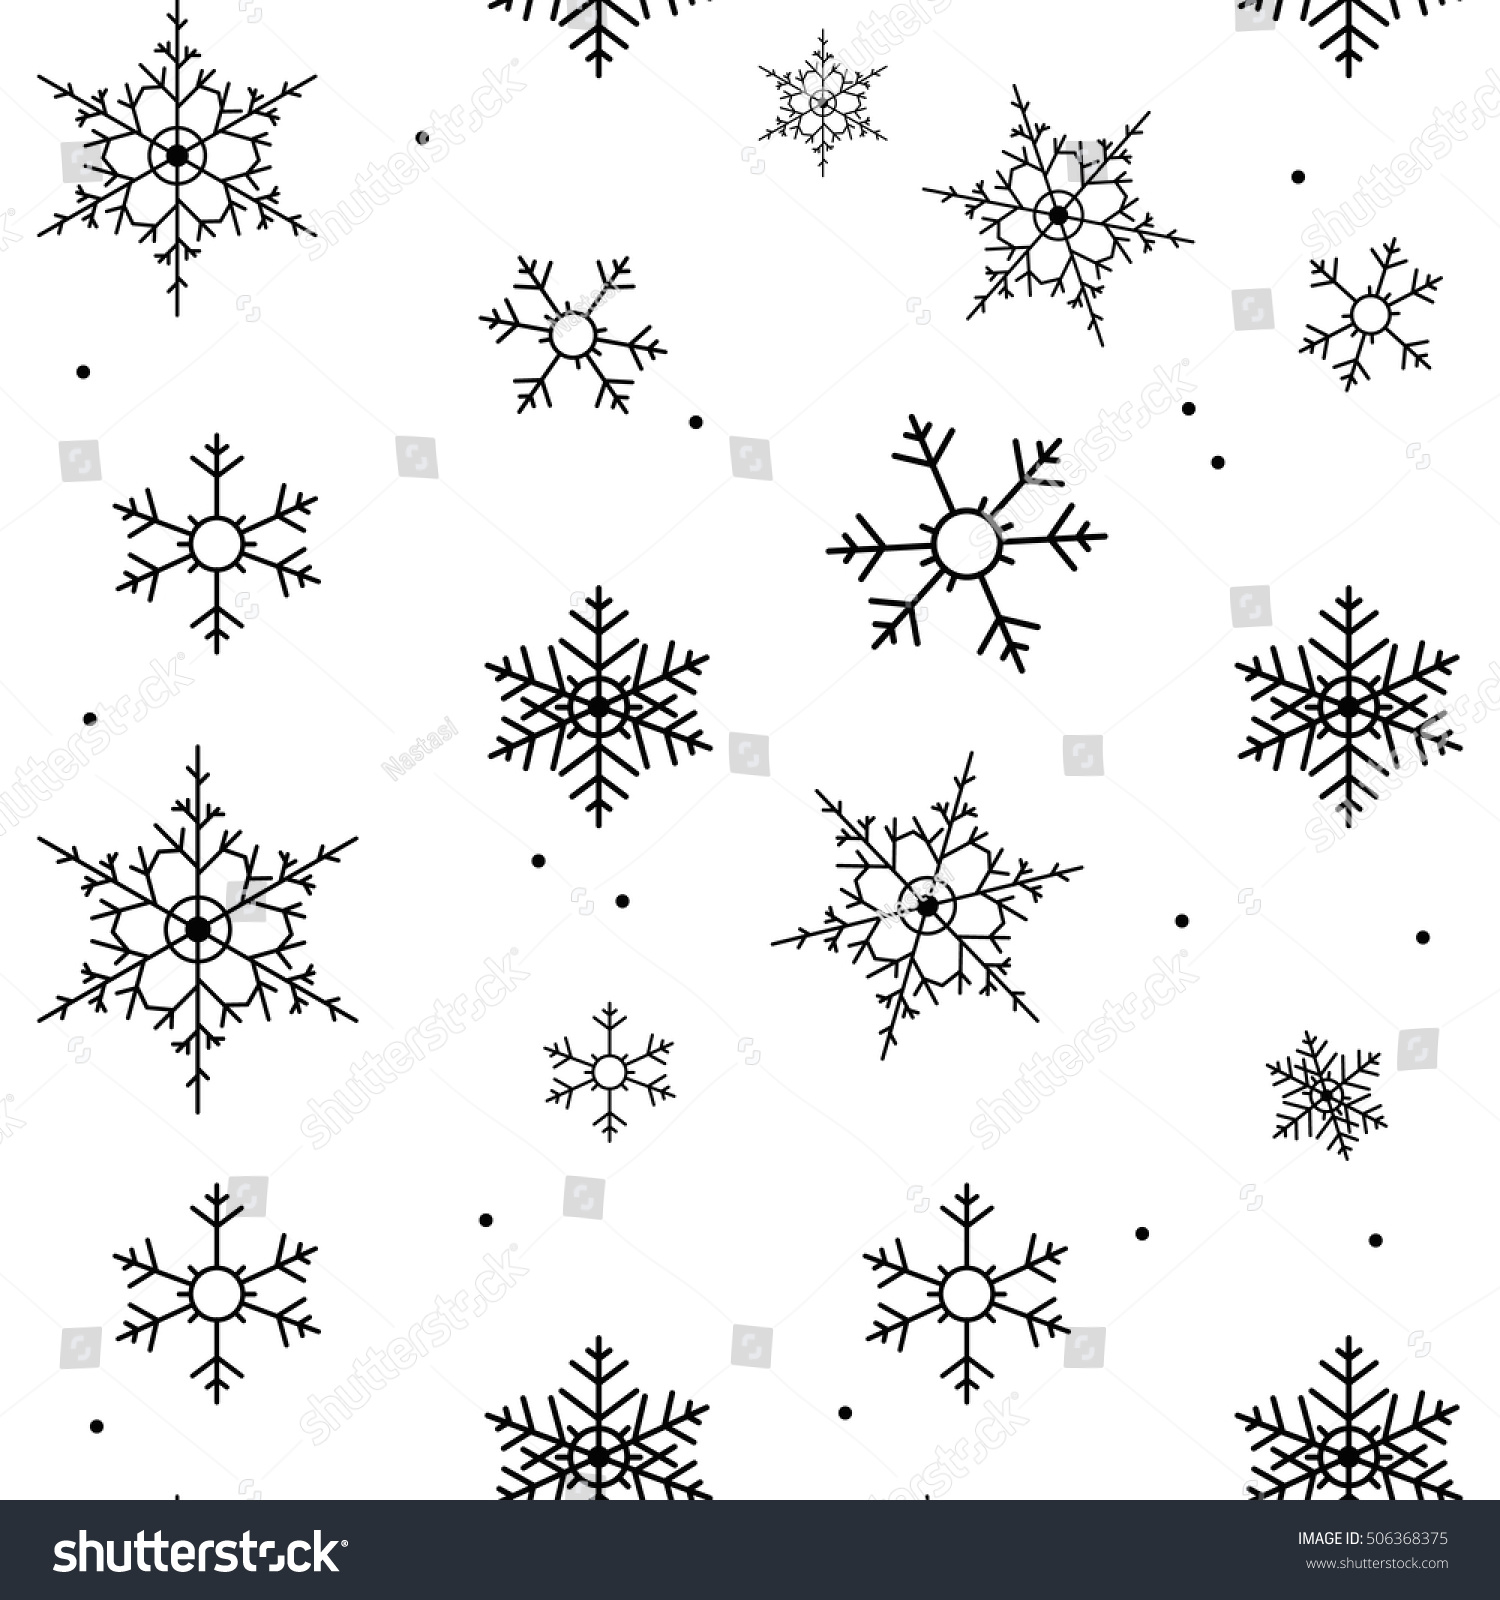 snowflake black and white background christmas texture happy new year